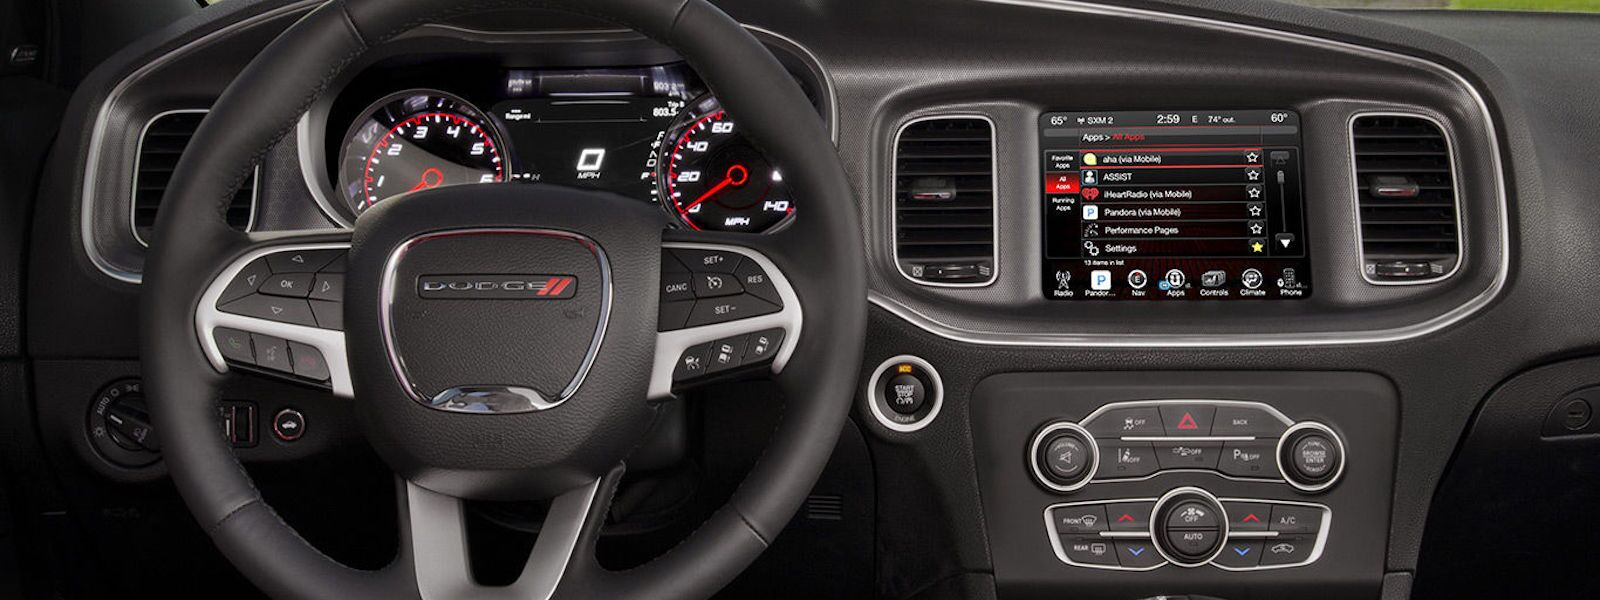 2016 Dodge Charger Technology